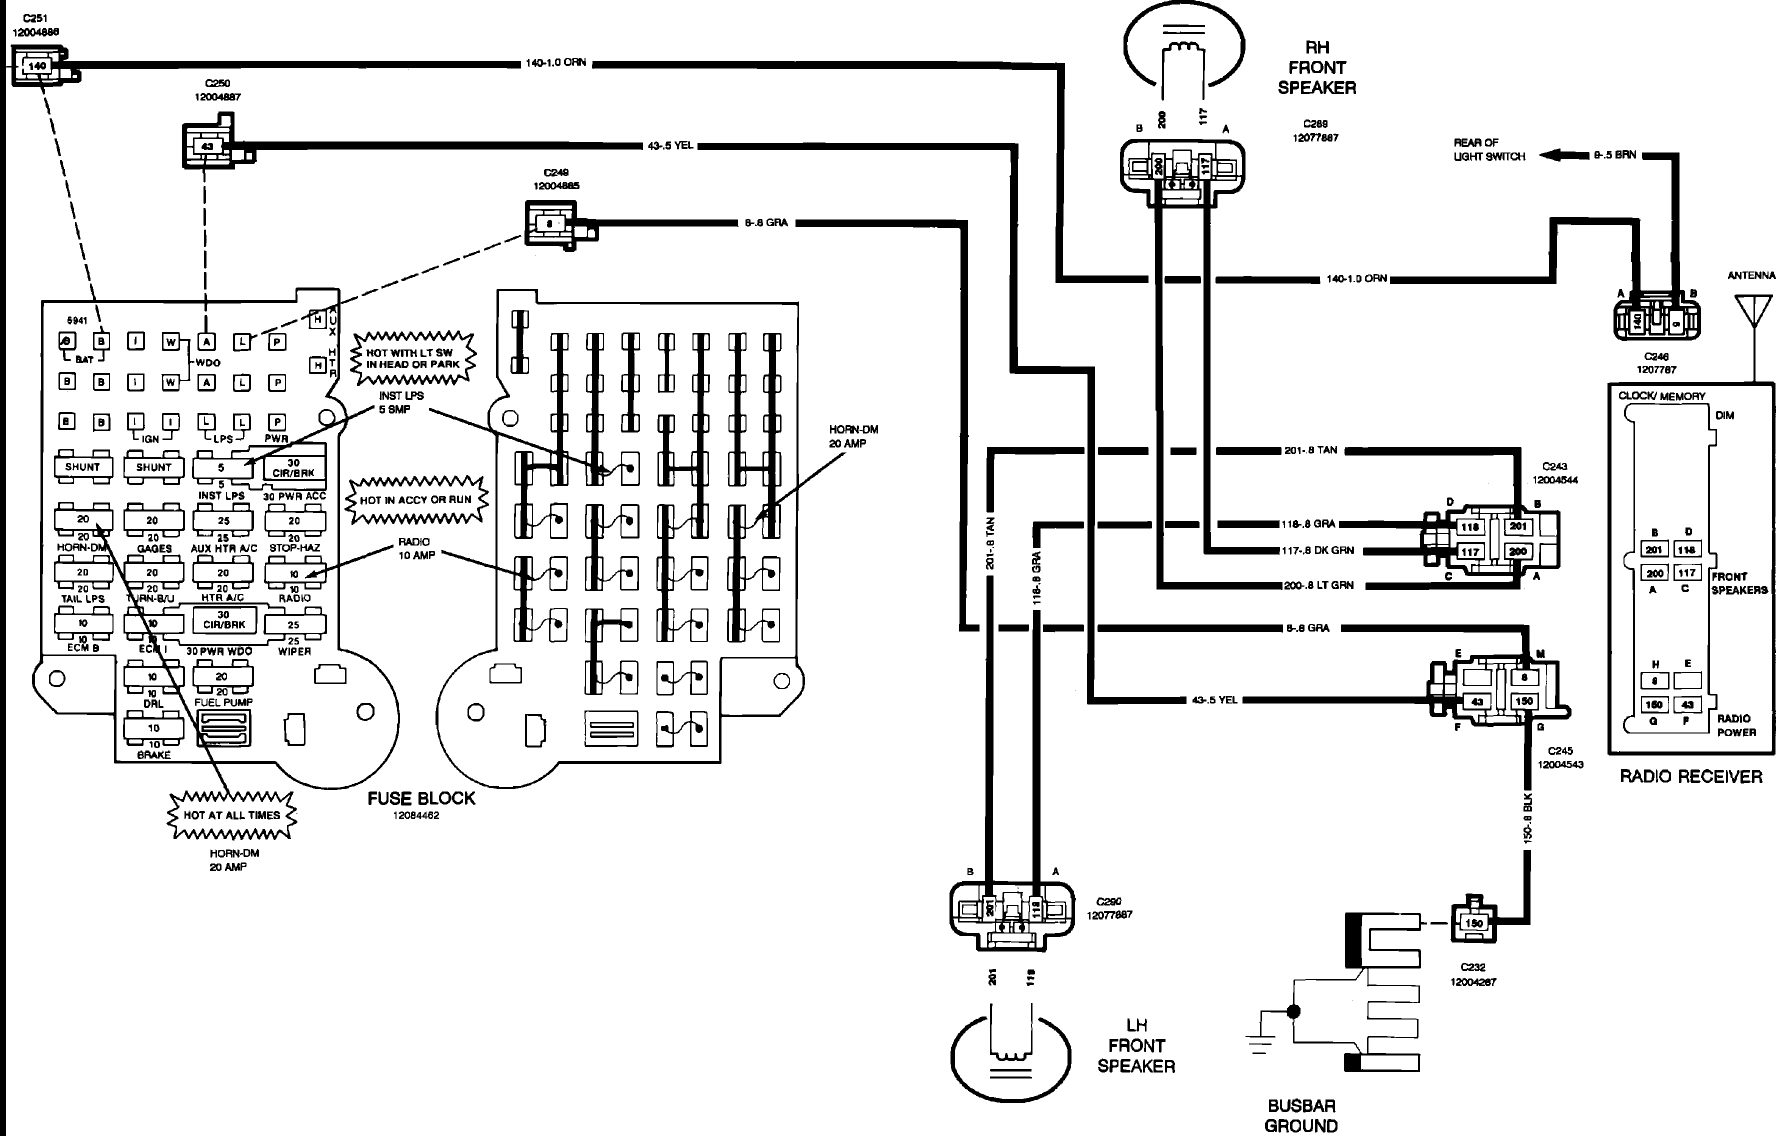 1979 Chevy Cargo Van Fuse Box Diagram | Wiring Diagram - Chevy 350 Wiring Diagram